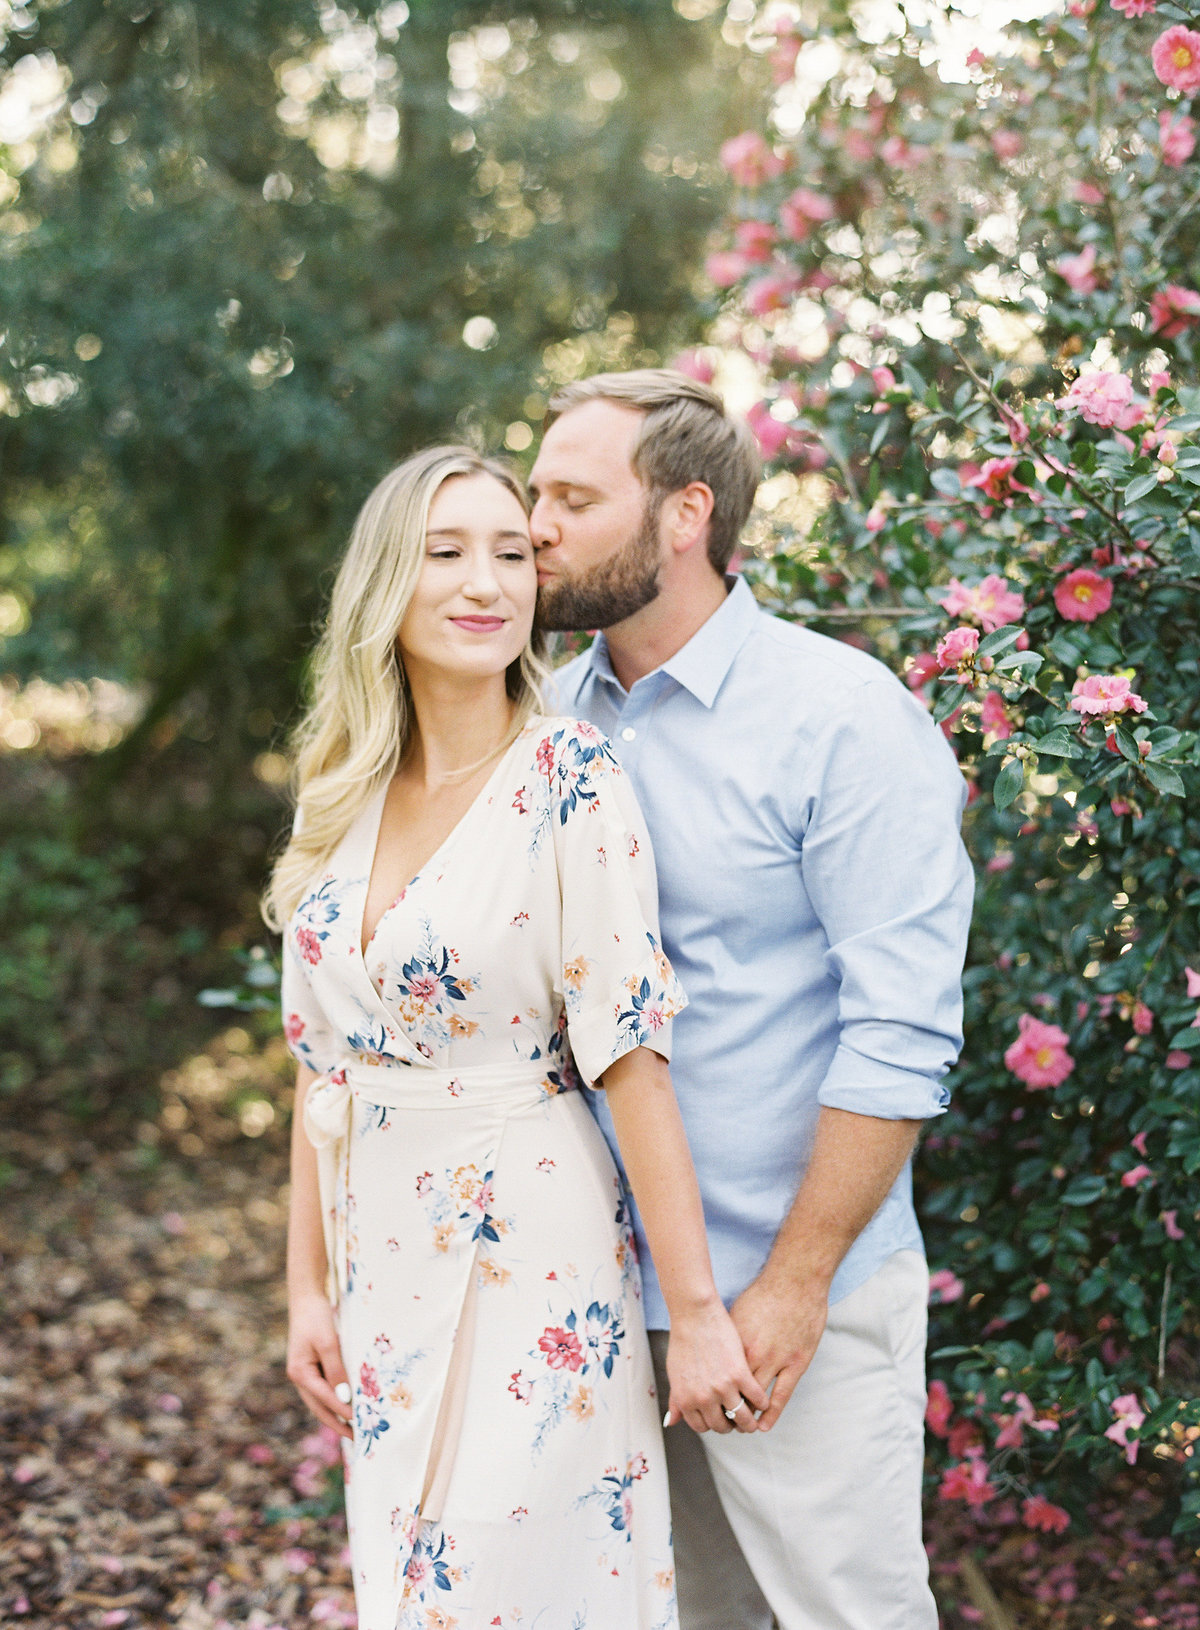 Bok_Tower_Garden_Film_Fine_Art_Engagement_Session-5